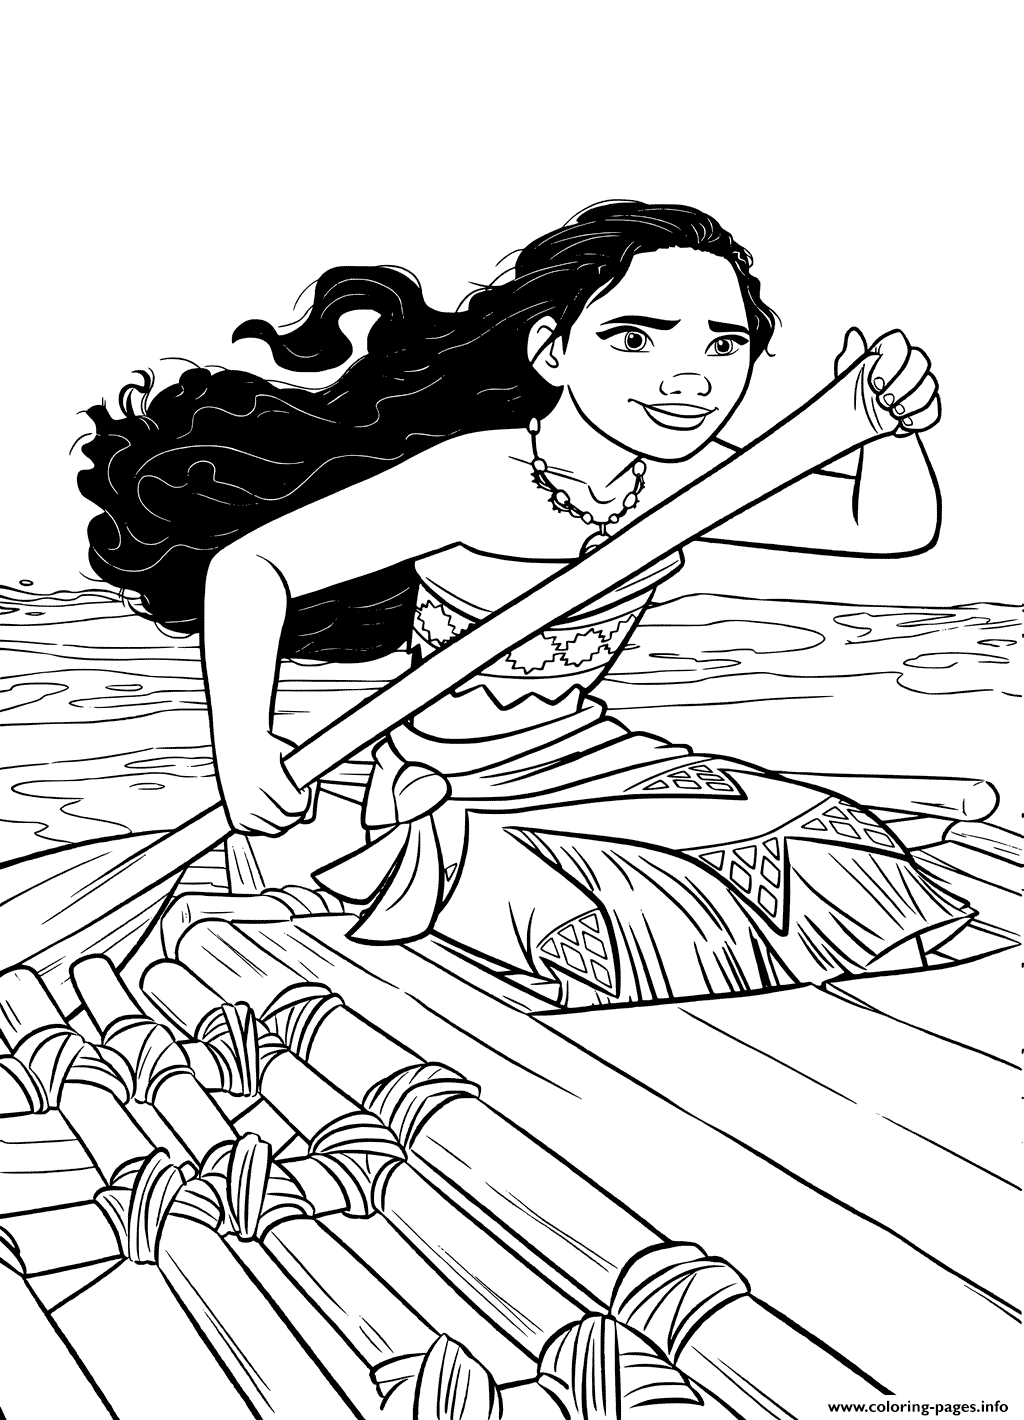 Moana On A Little Ship coloring pages